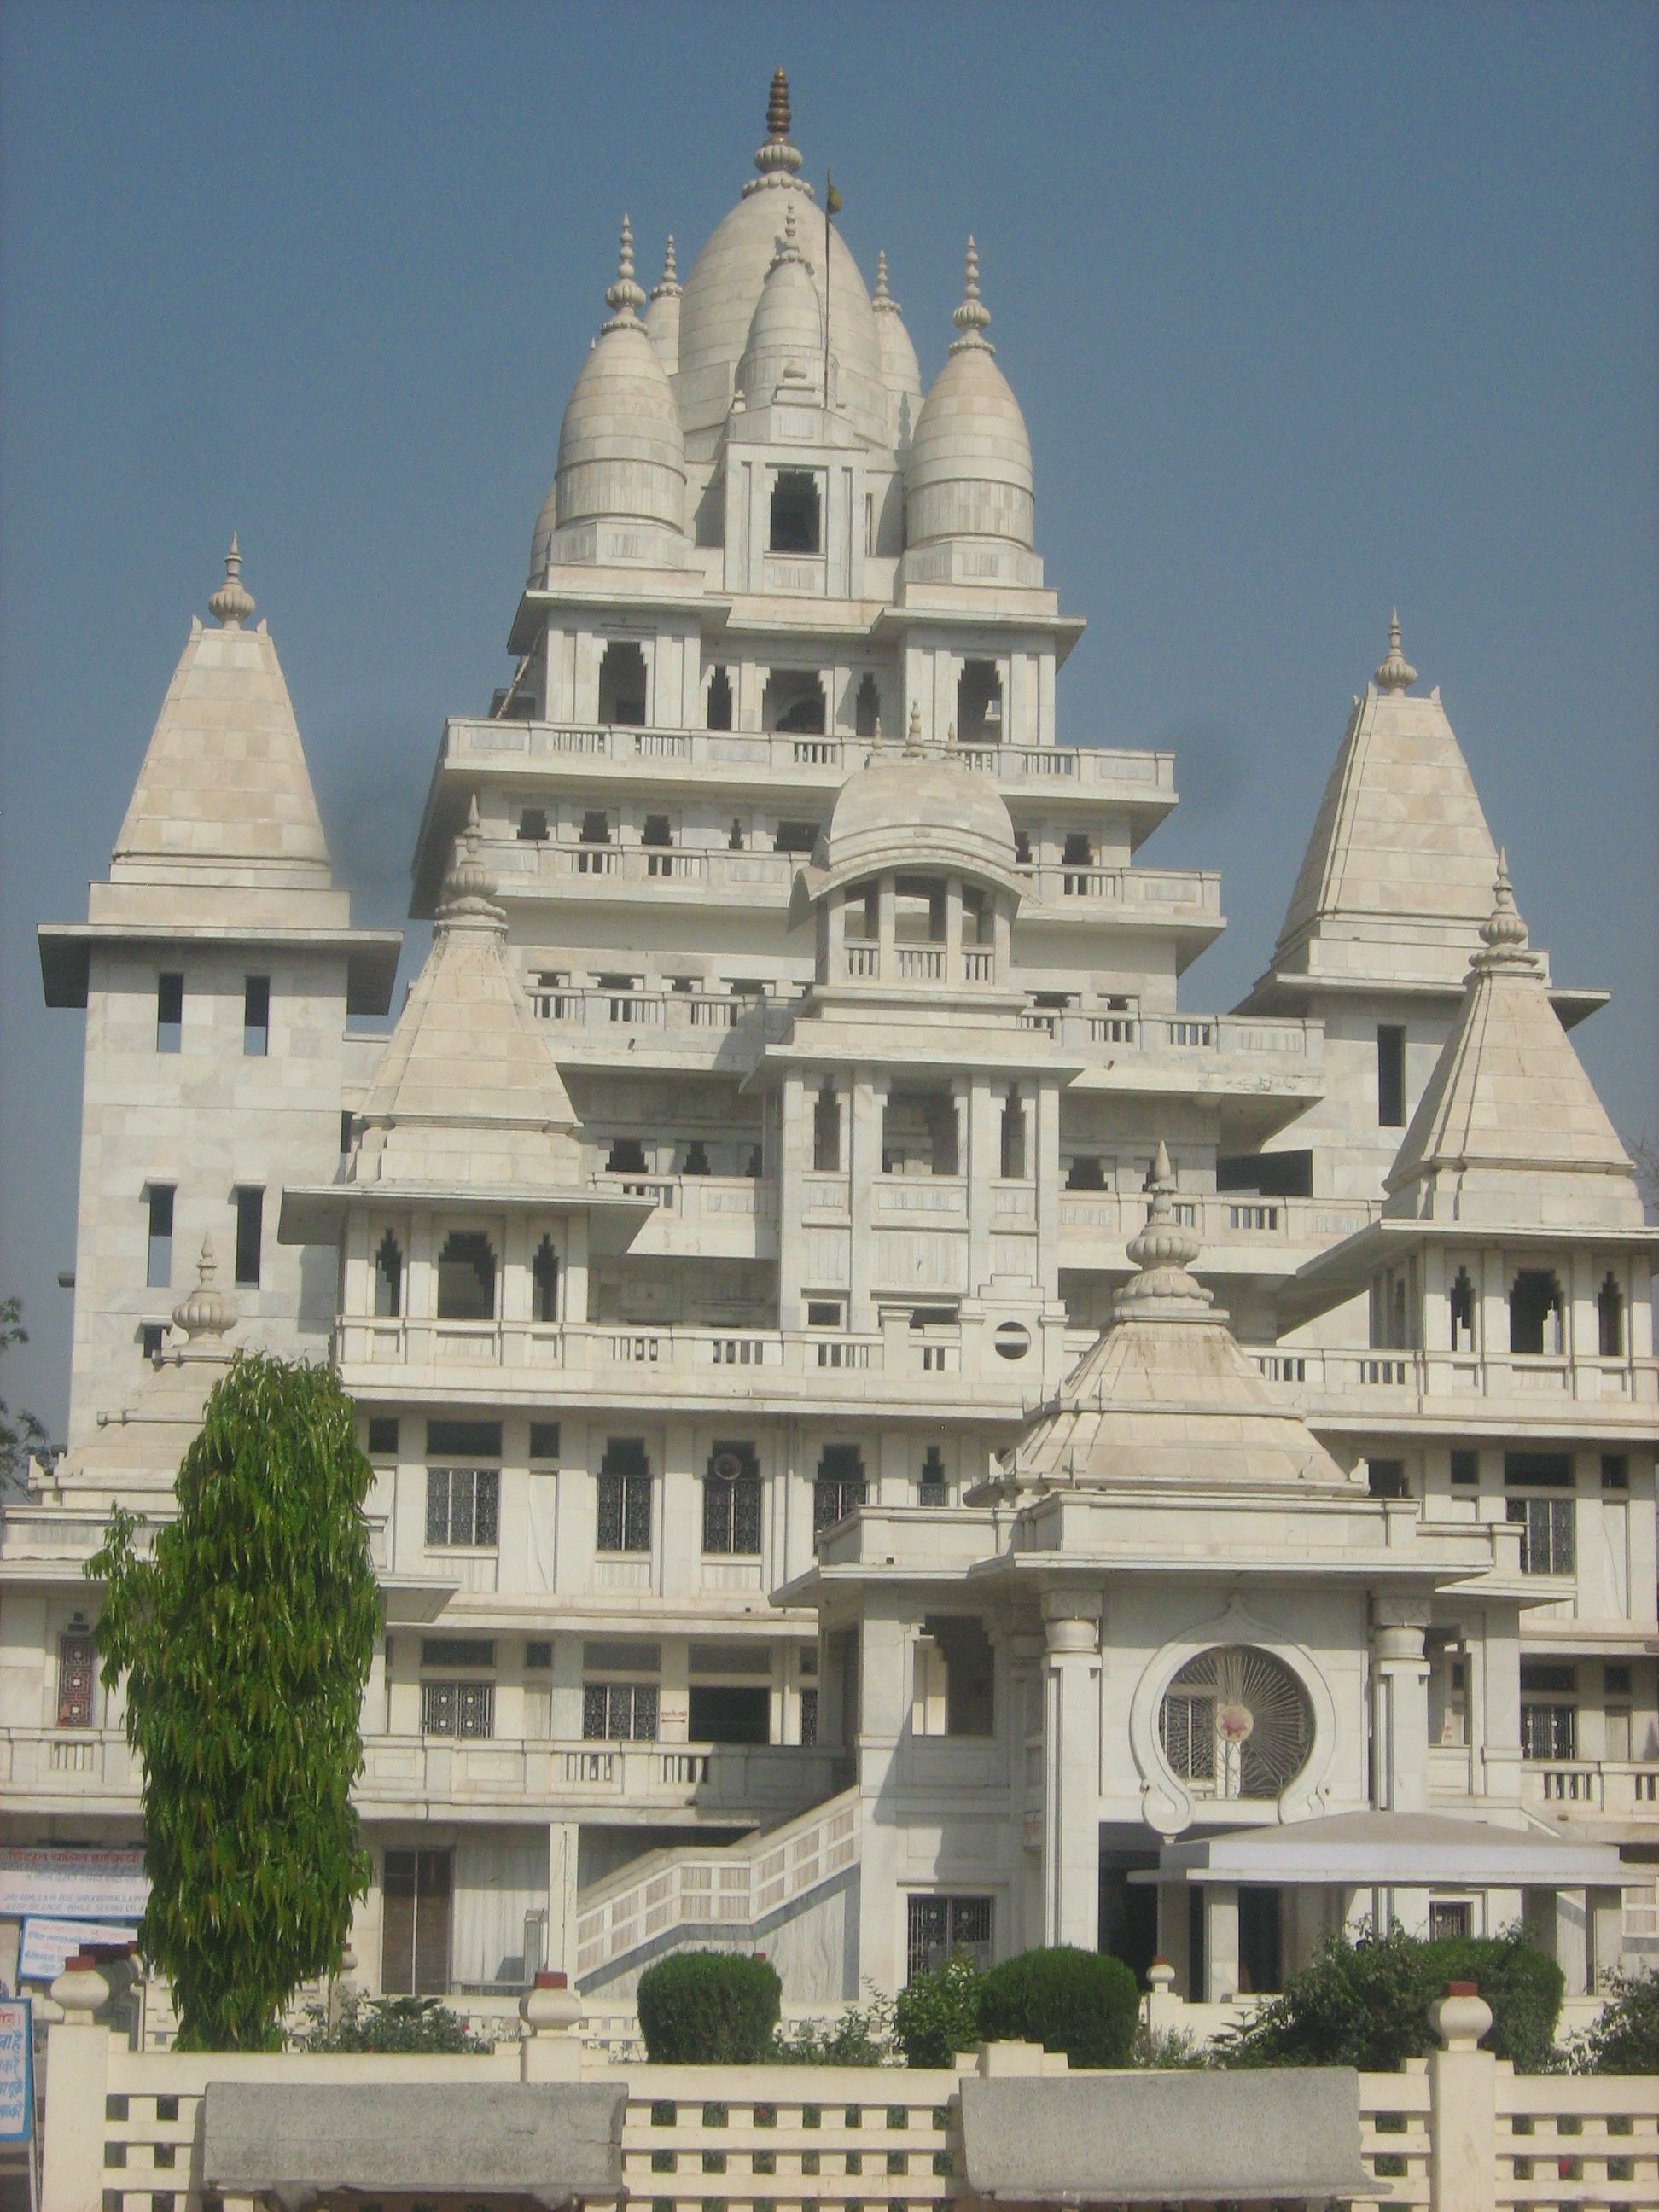 Gajanan maharaj temple anand sagar shegaon the pandharpur of gajanan maharaj temple anand sagar shegaon the pandharpur of vidarbha c httpijiya8236413 temple pinterest temple hindu temple and fandeluxe Image collections